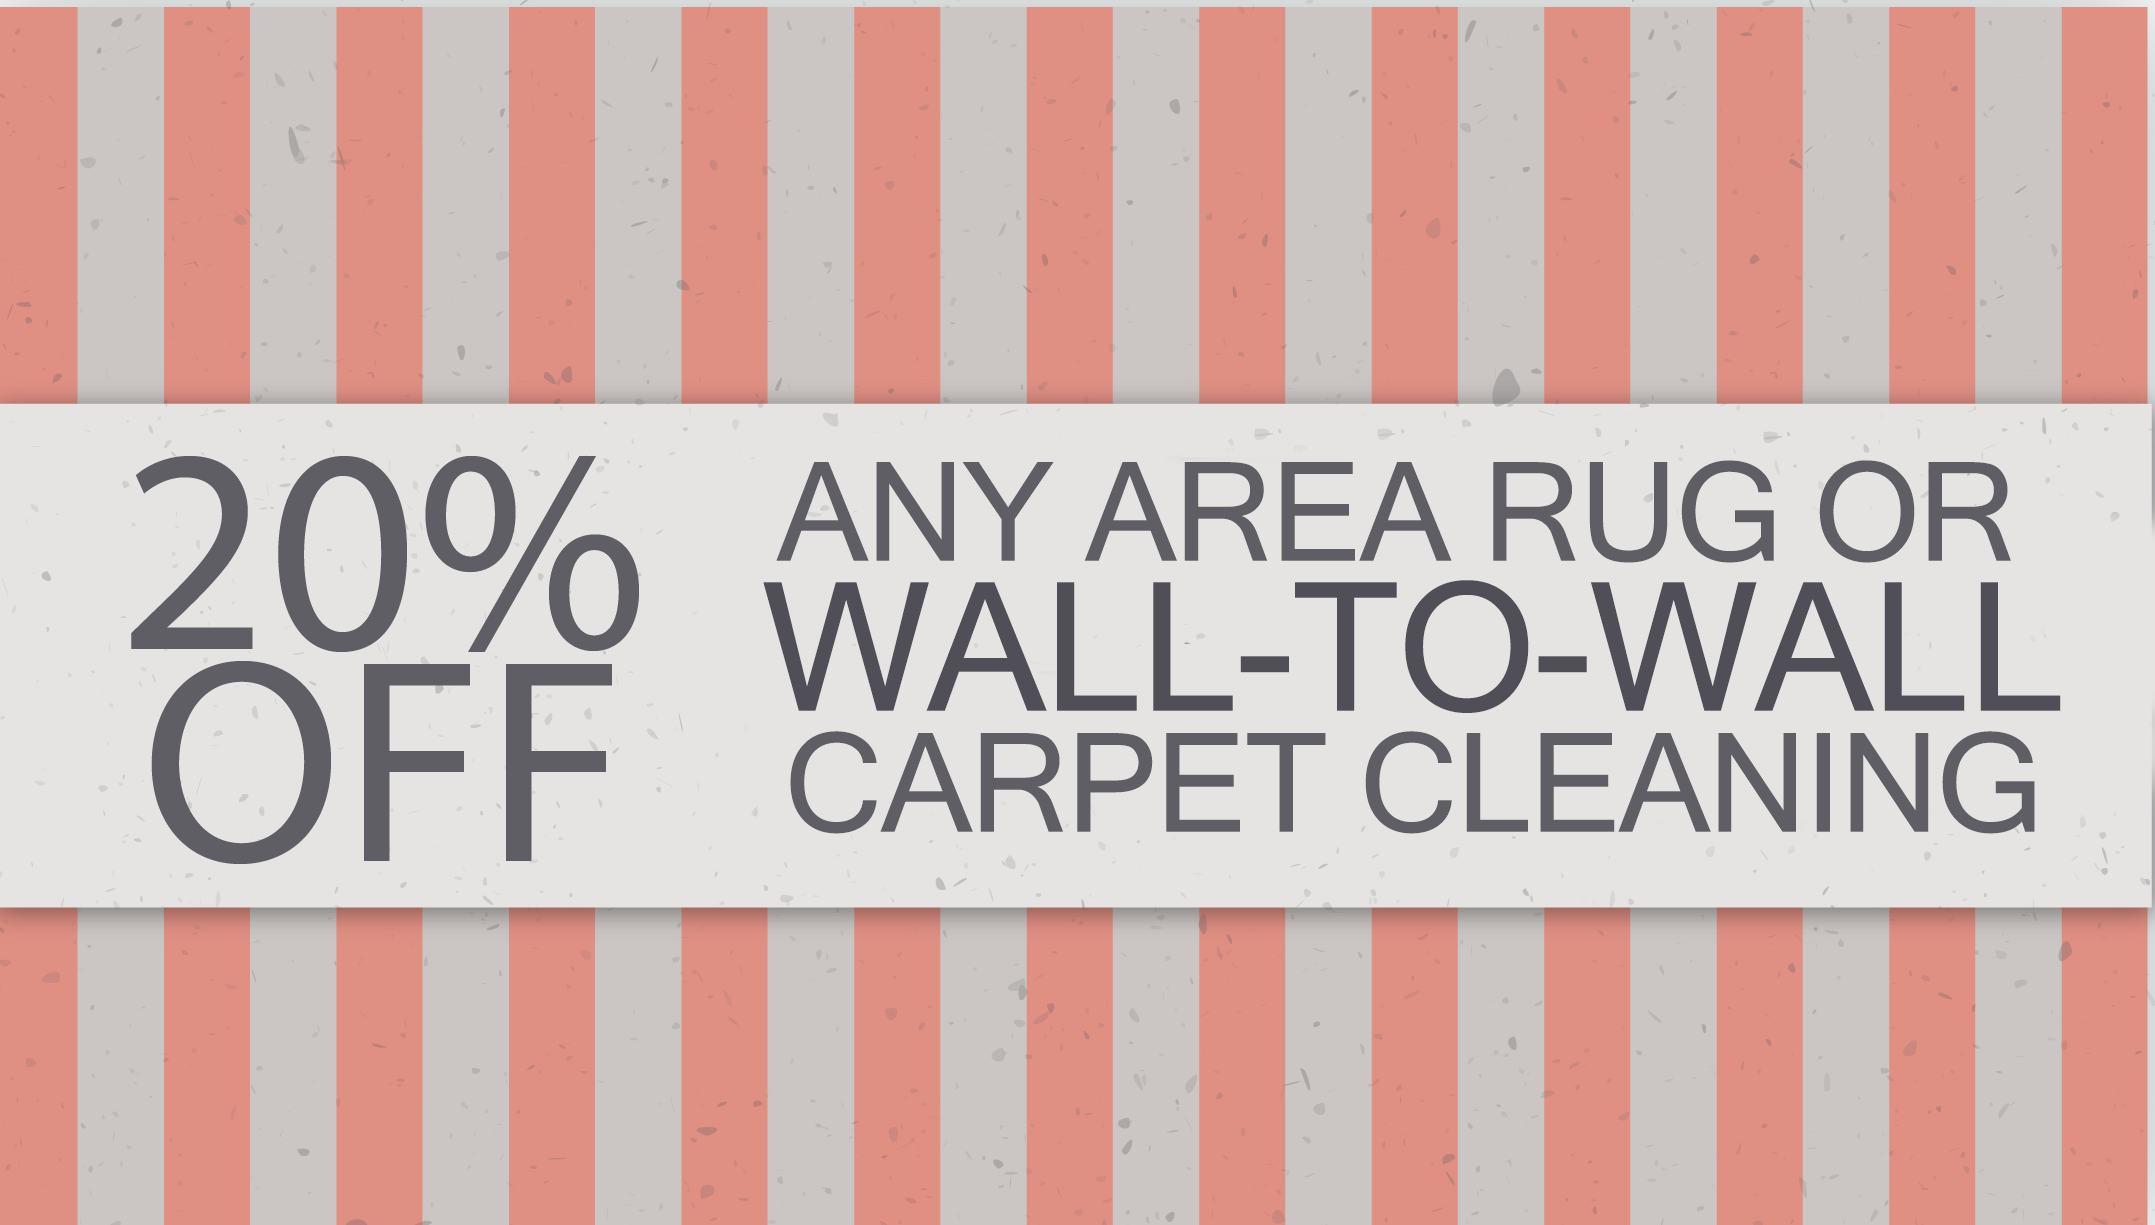 20 OFF ANY AREA RUG OR WALL2WALL CARPET CLEANING